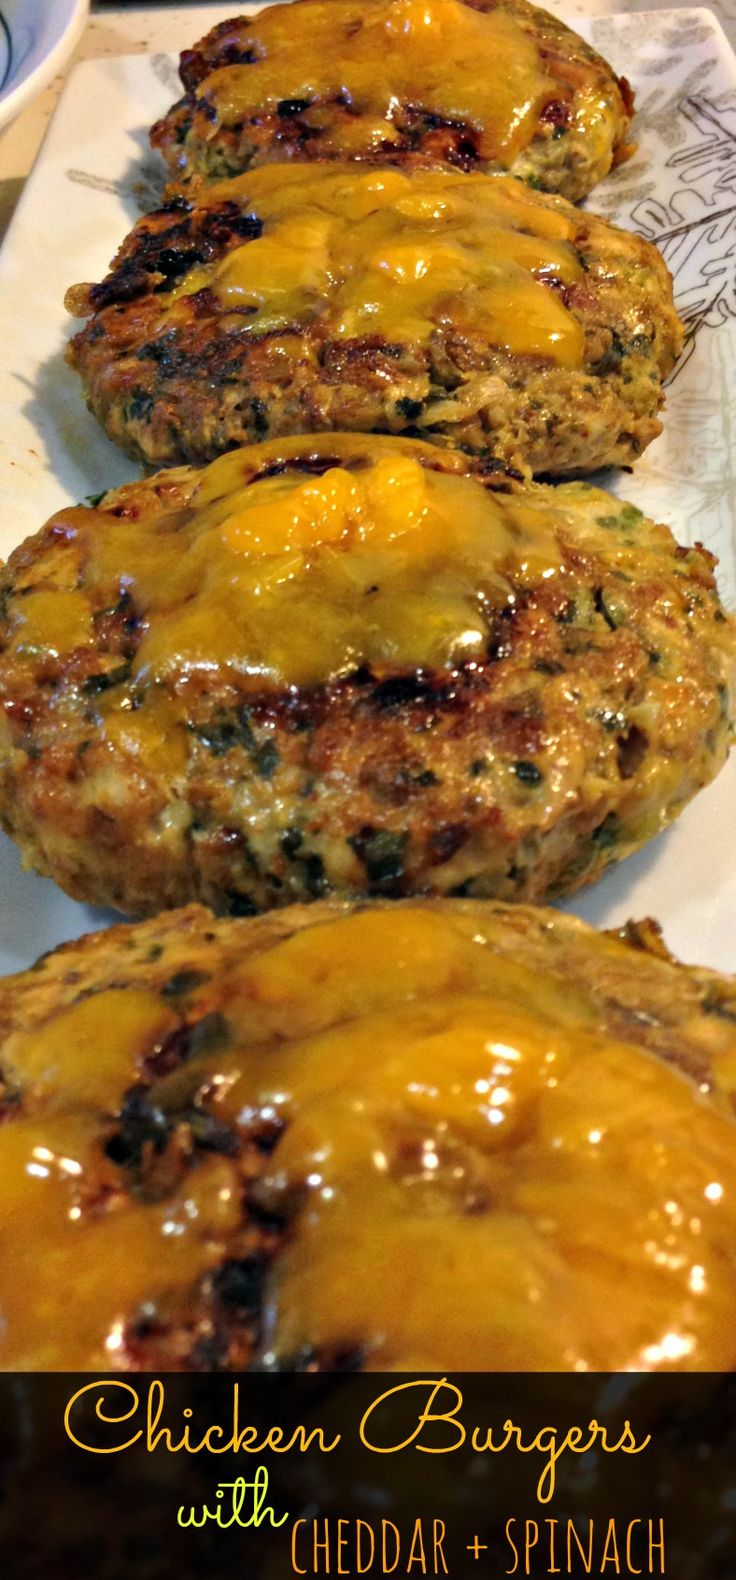 Chicken Burgers with Spinach Cheddar - Clean eating, easy recipe would be great for 4th of July BBQ, picnic, or cookout